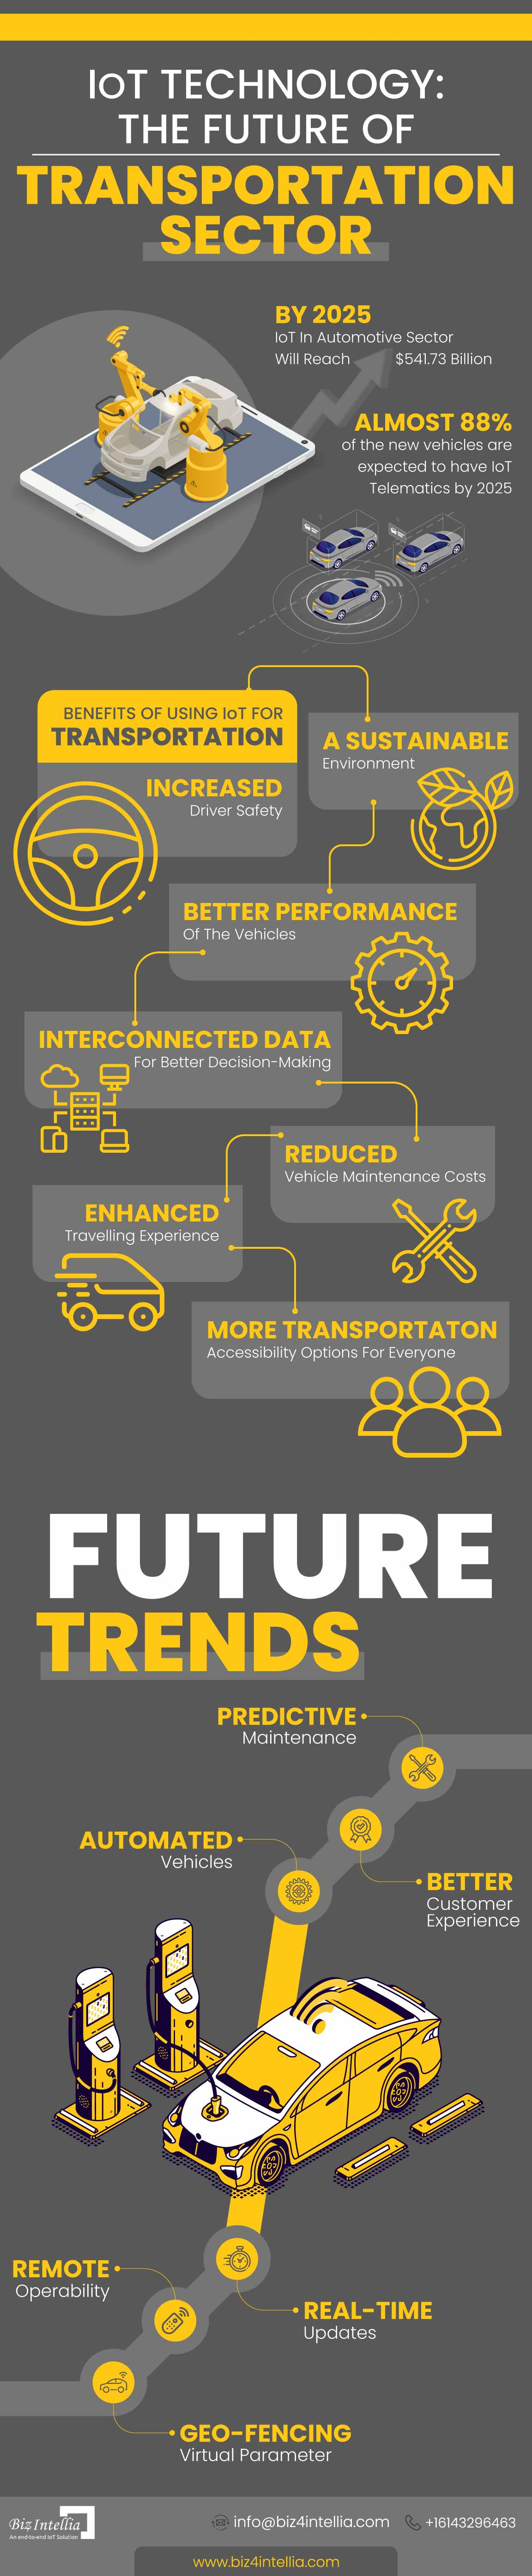 iot-technology-the-future-of-transportation-sector